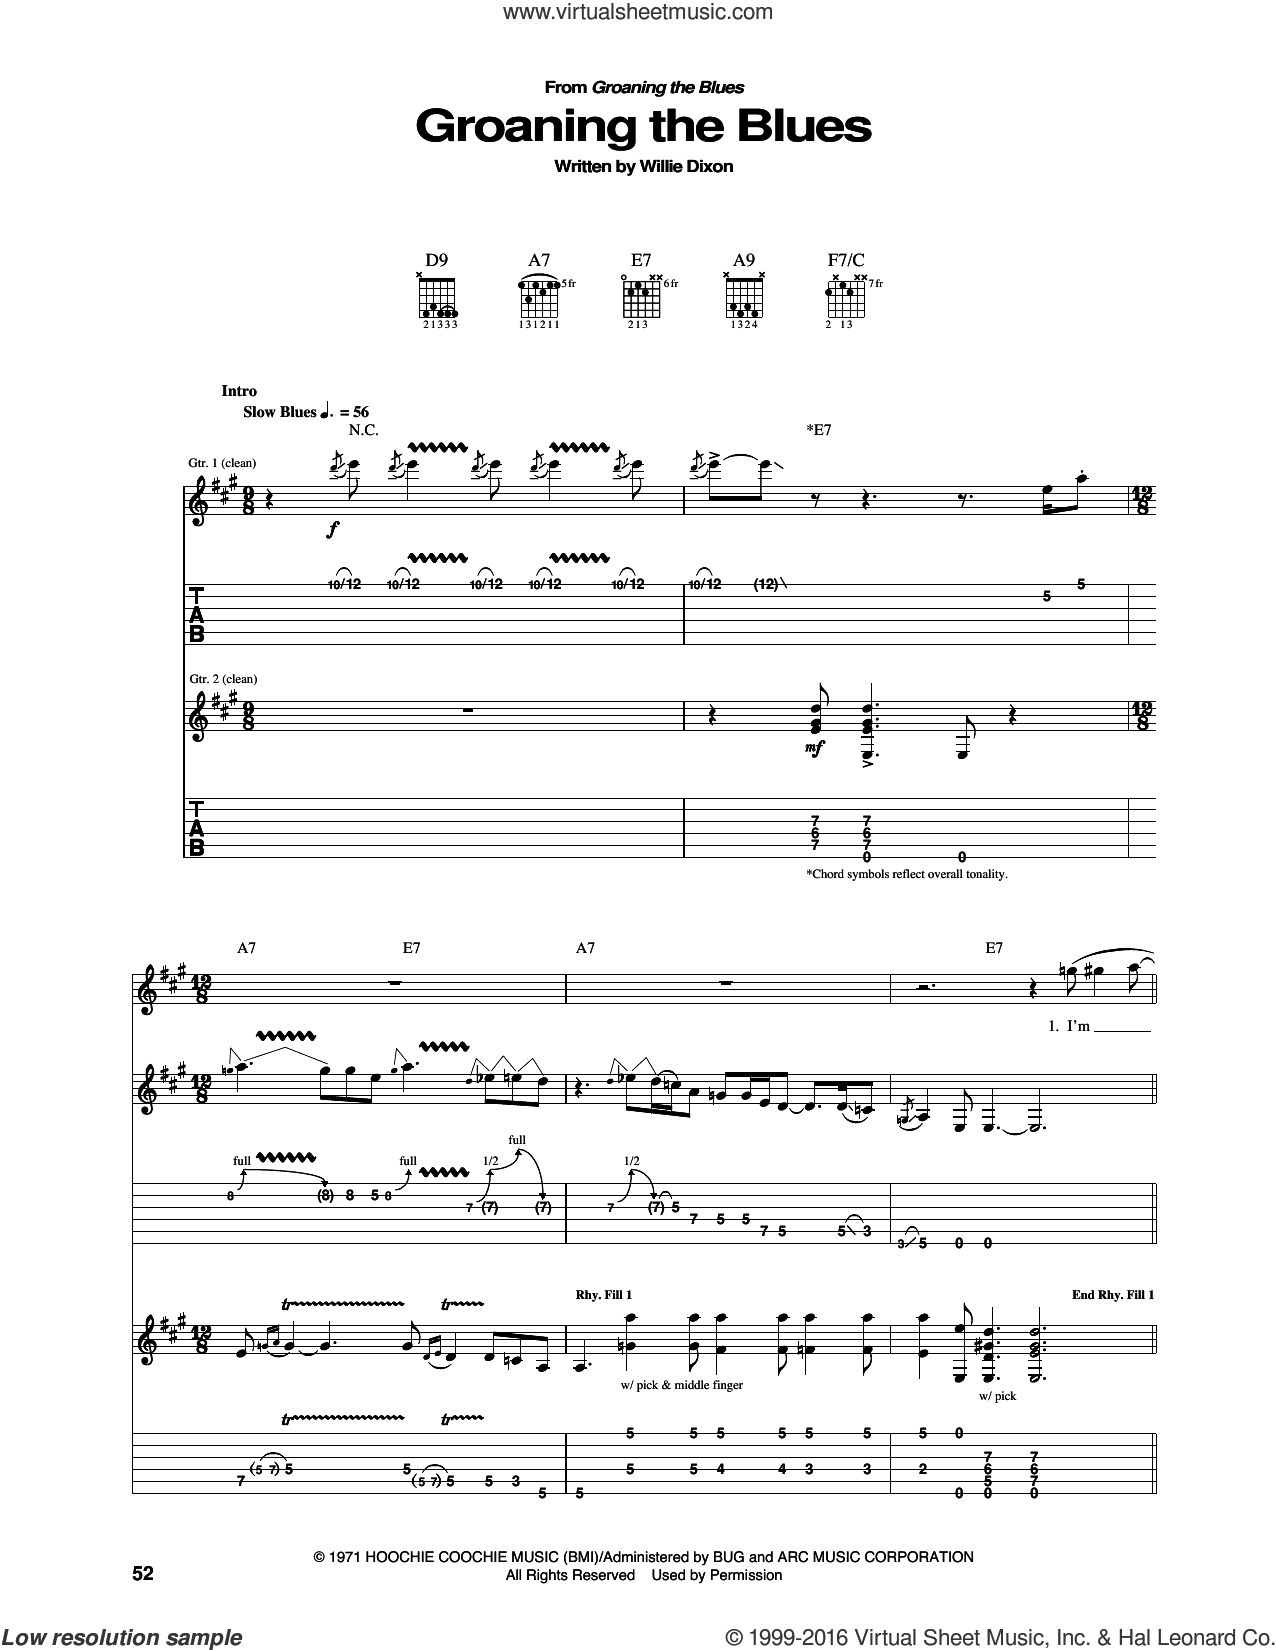 Groaning The Blues sheet music for guitar (tablature) by Willie Dixon and Otis Rush. Score Image Preview.